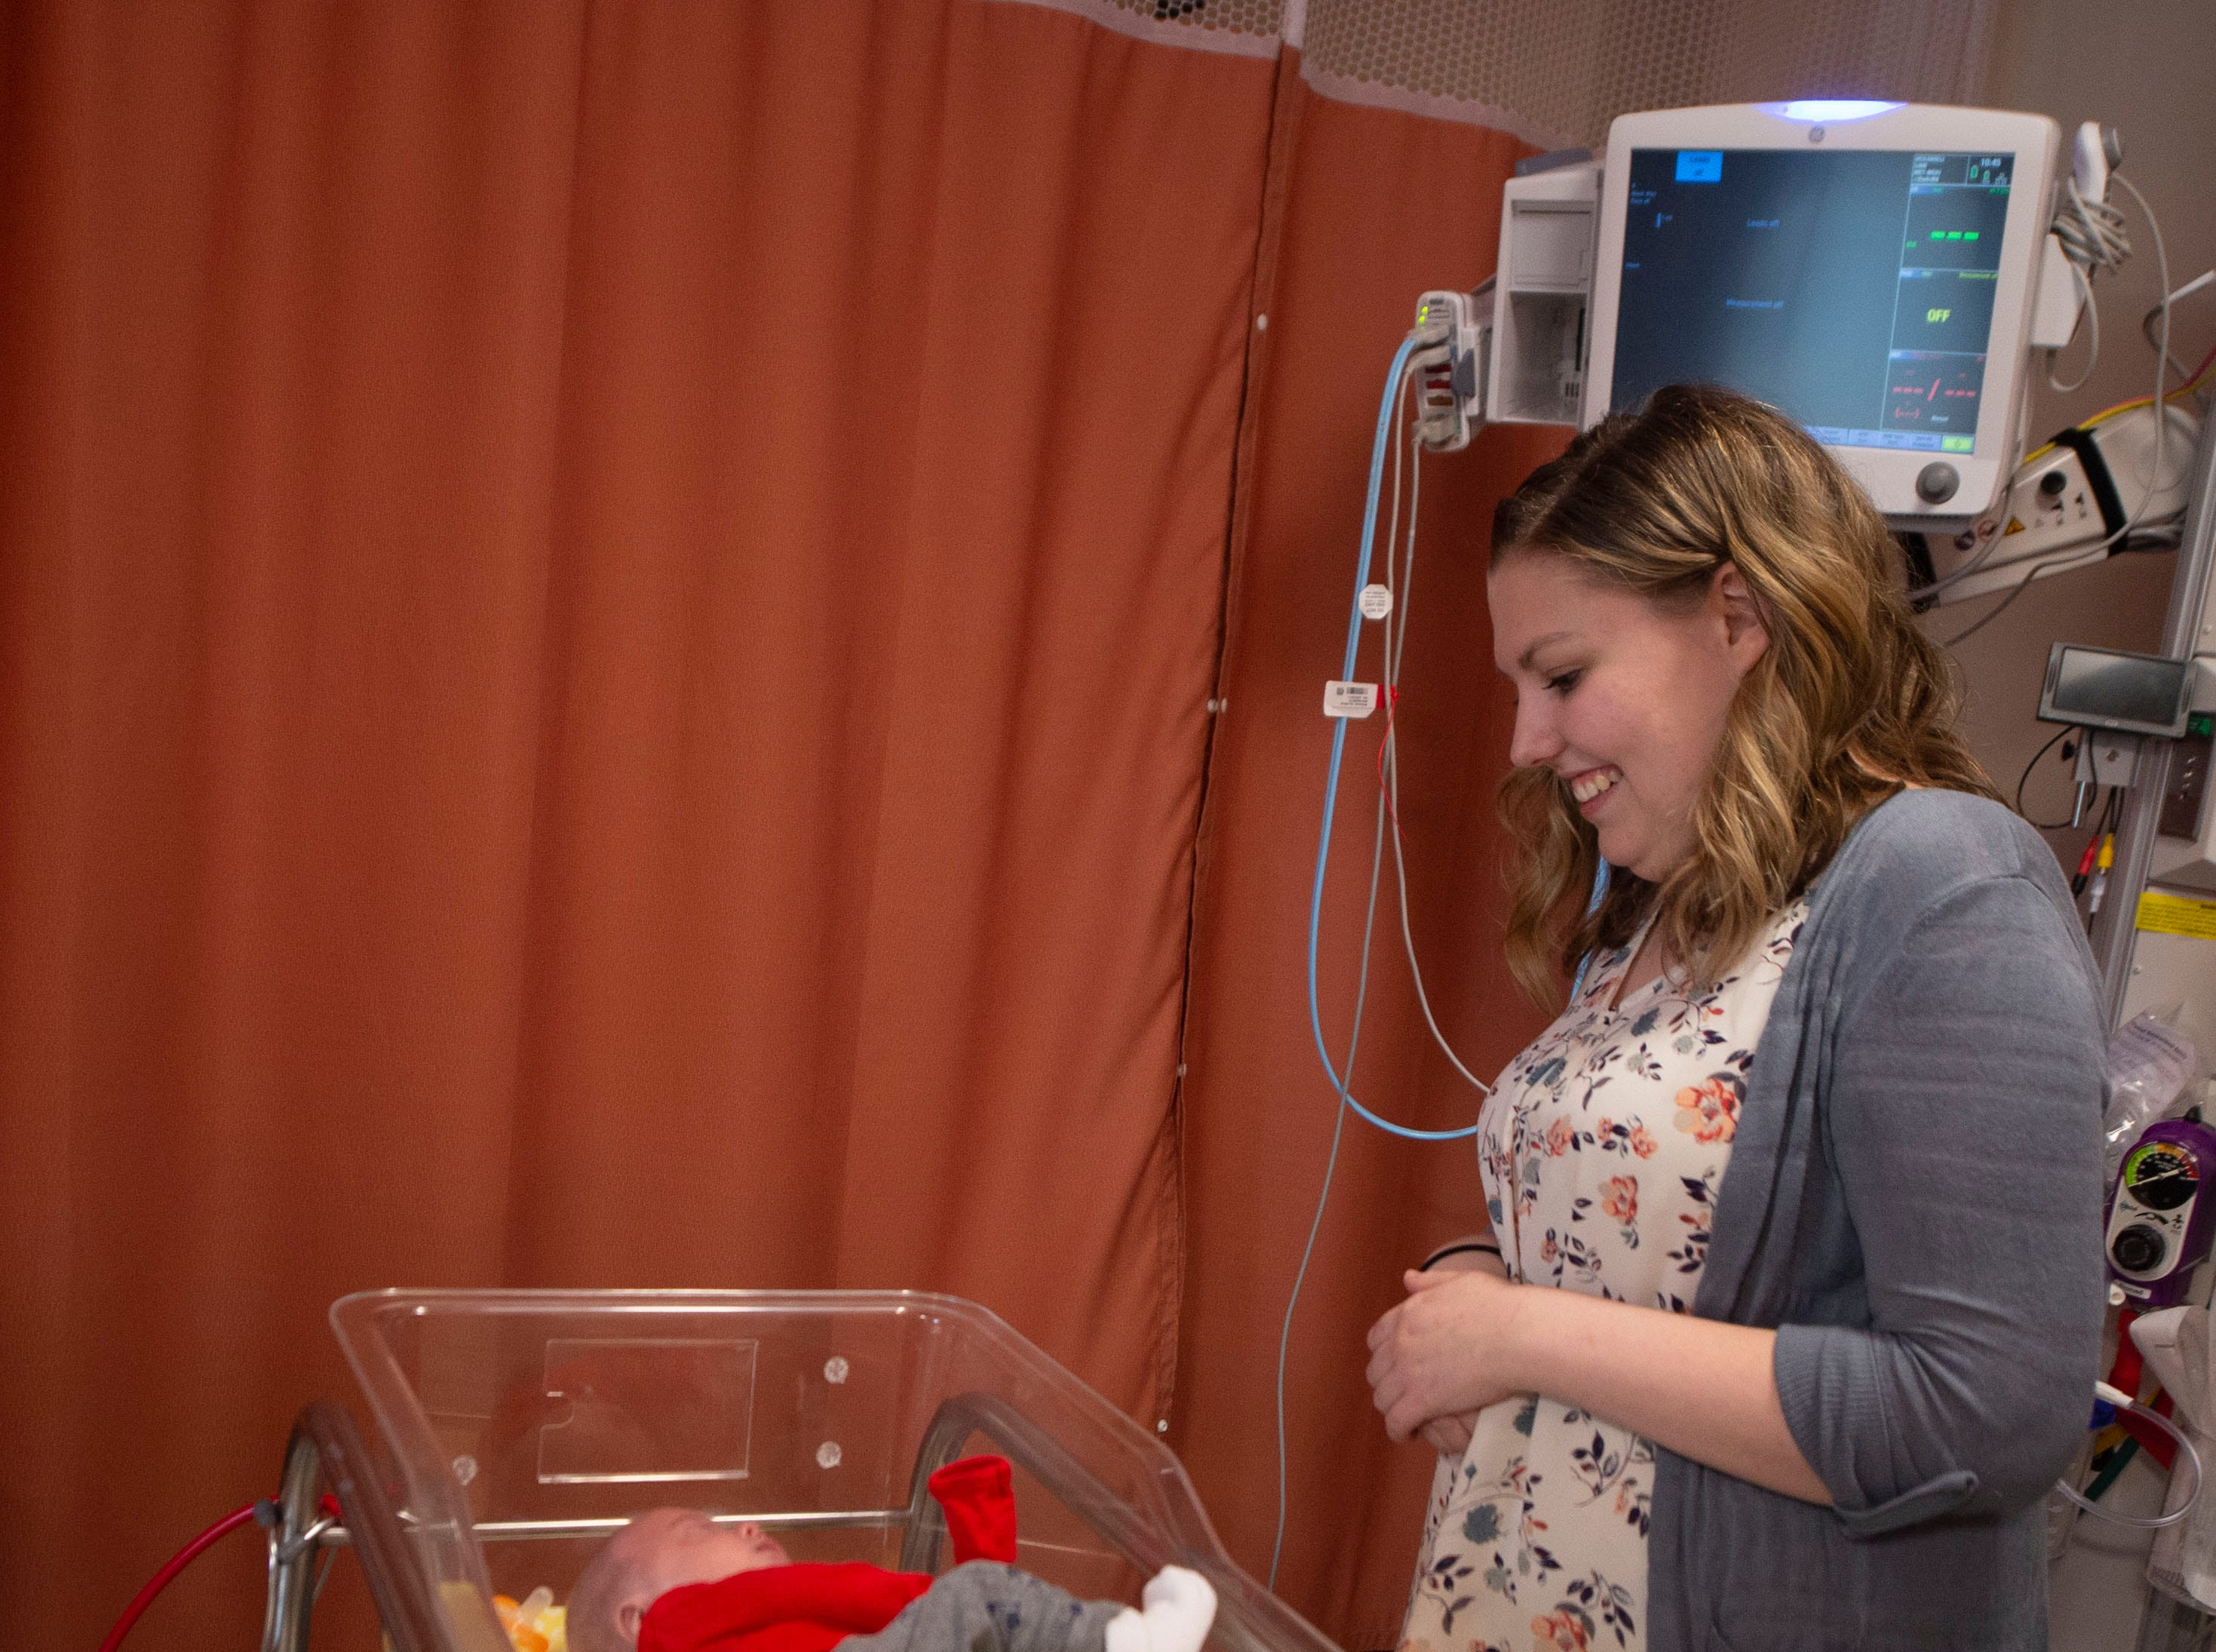 Mary McDannell with her son Liam McDannell inside his crib at WellSpan York Hospital. Liam was born on New Year's Day, York County's first born child for 2019. On Tuesday, April 9 graduated from the NICU and would visit his home in Adams County for the first time.